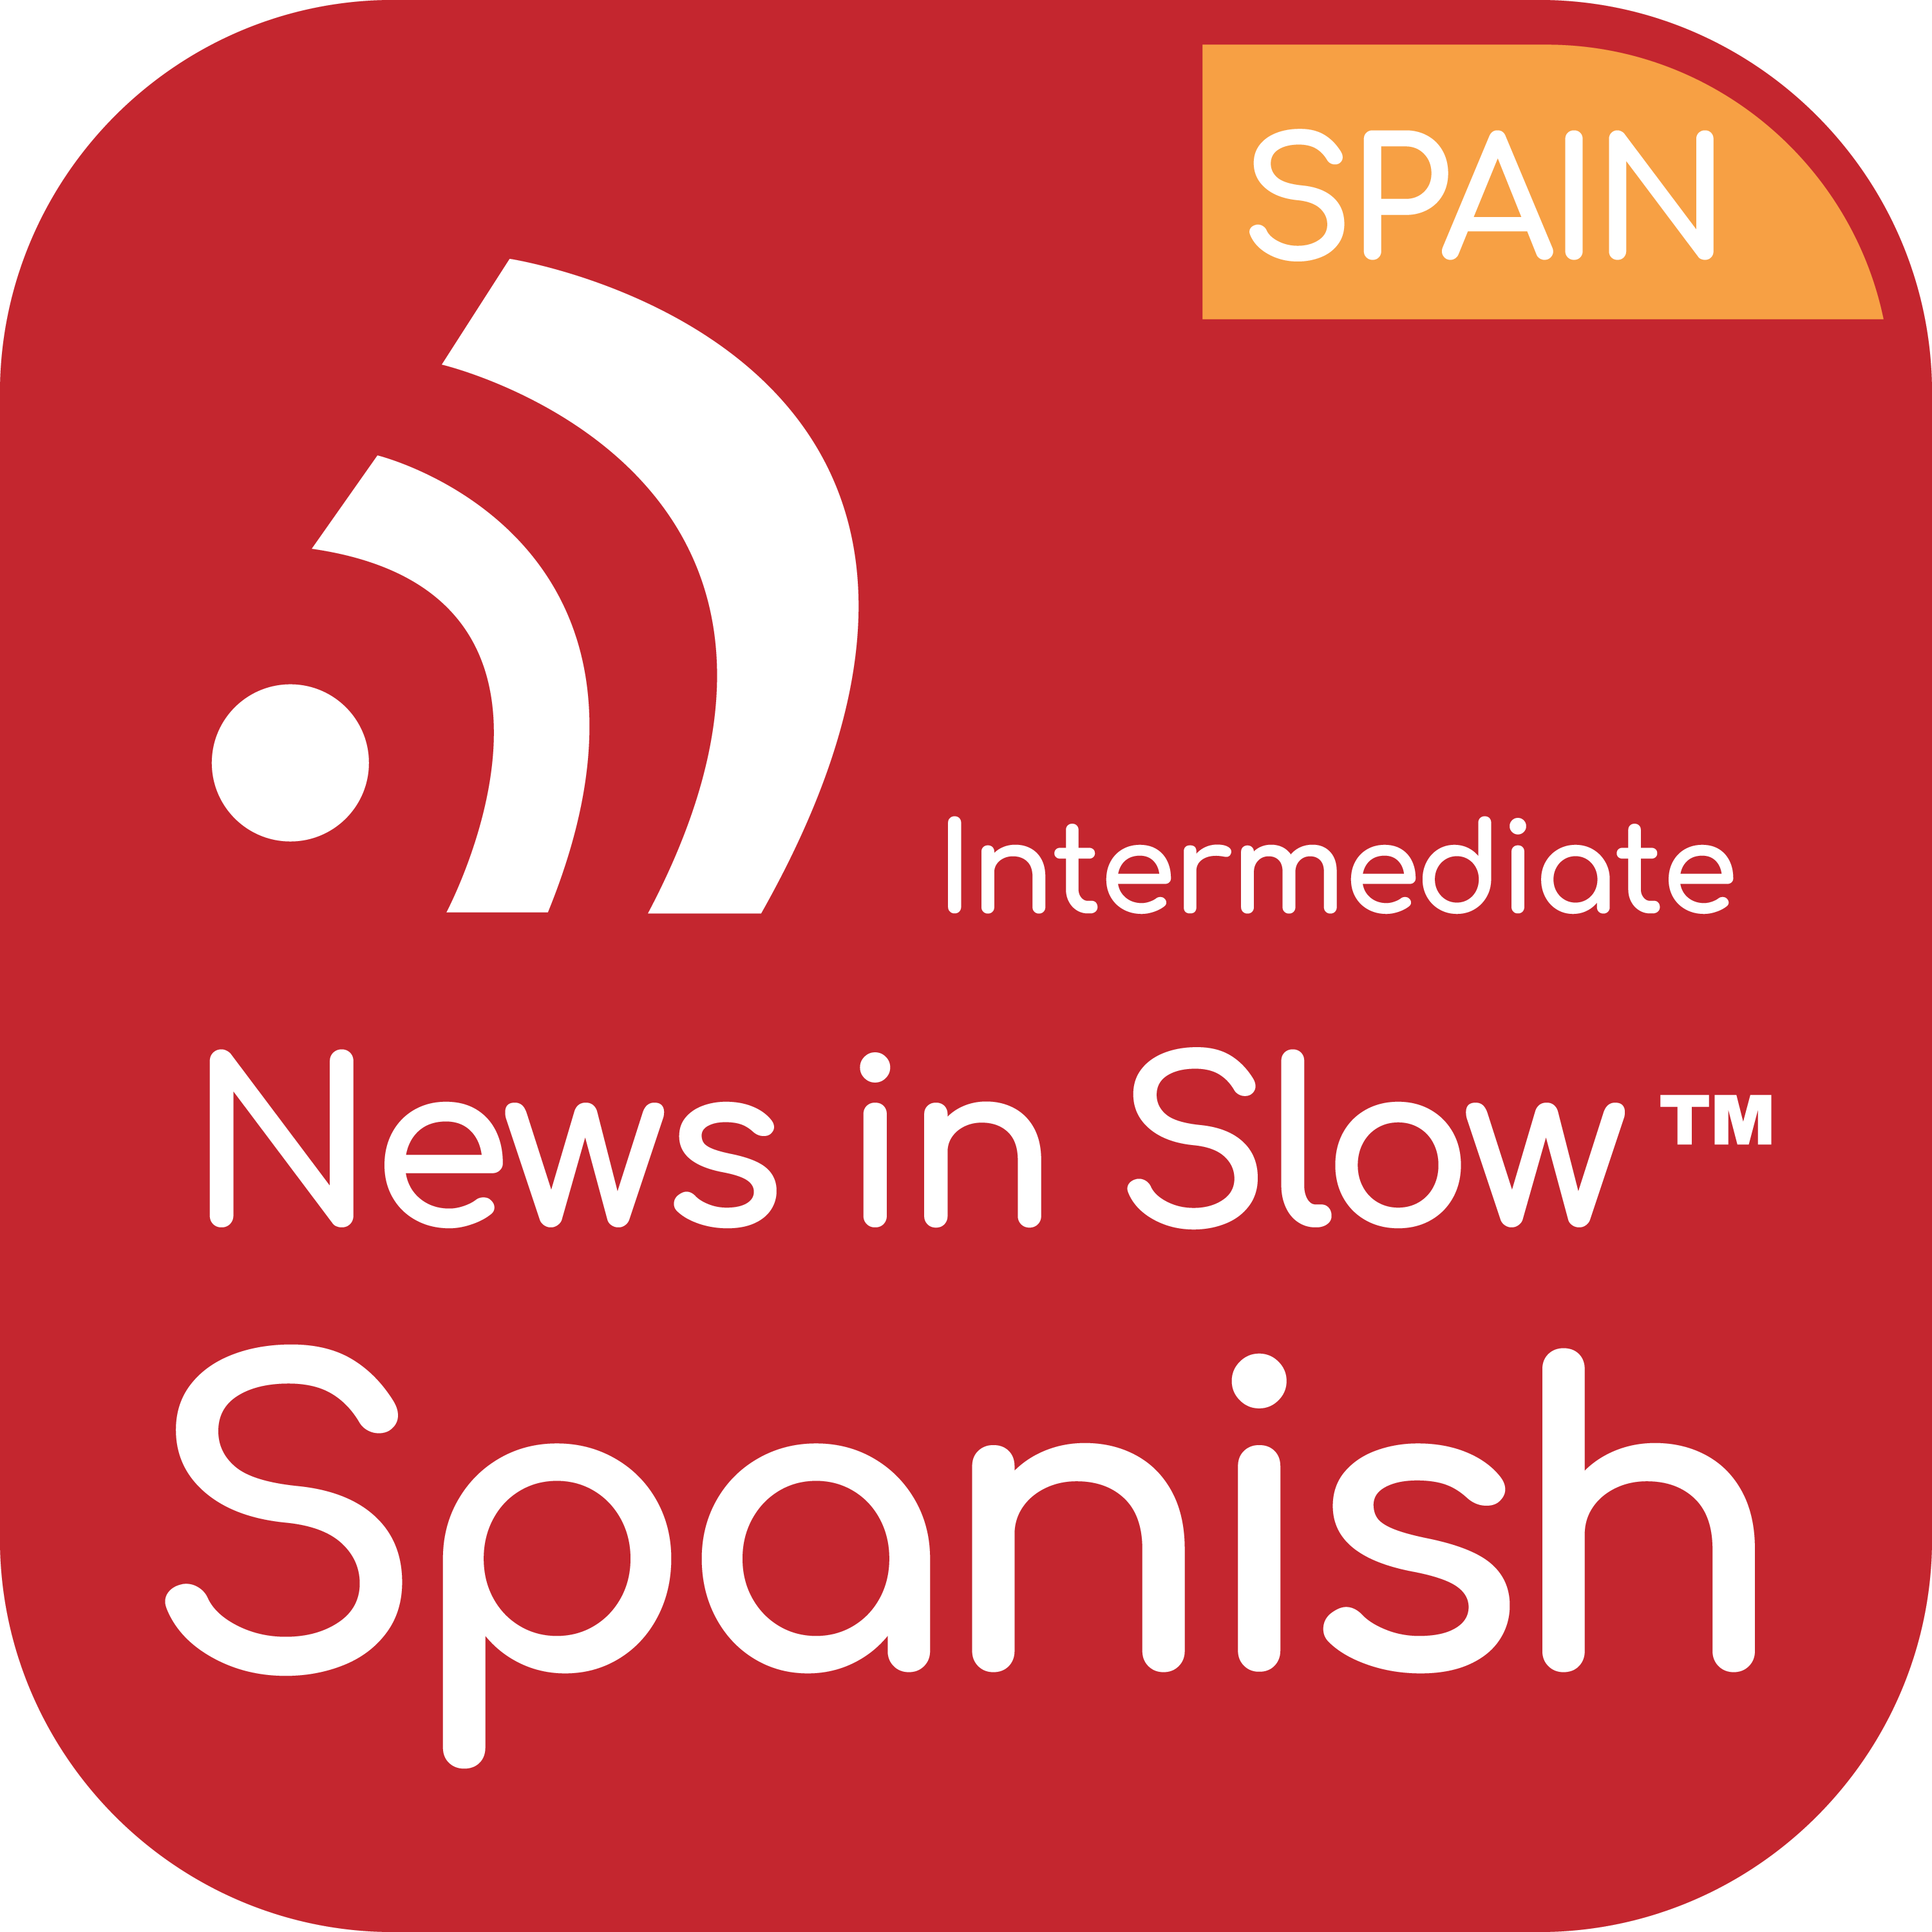 News in Slow Spanish - #561 - Study Spanish While Listening to the News